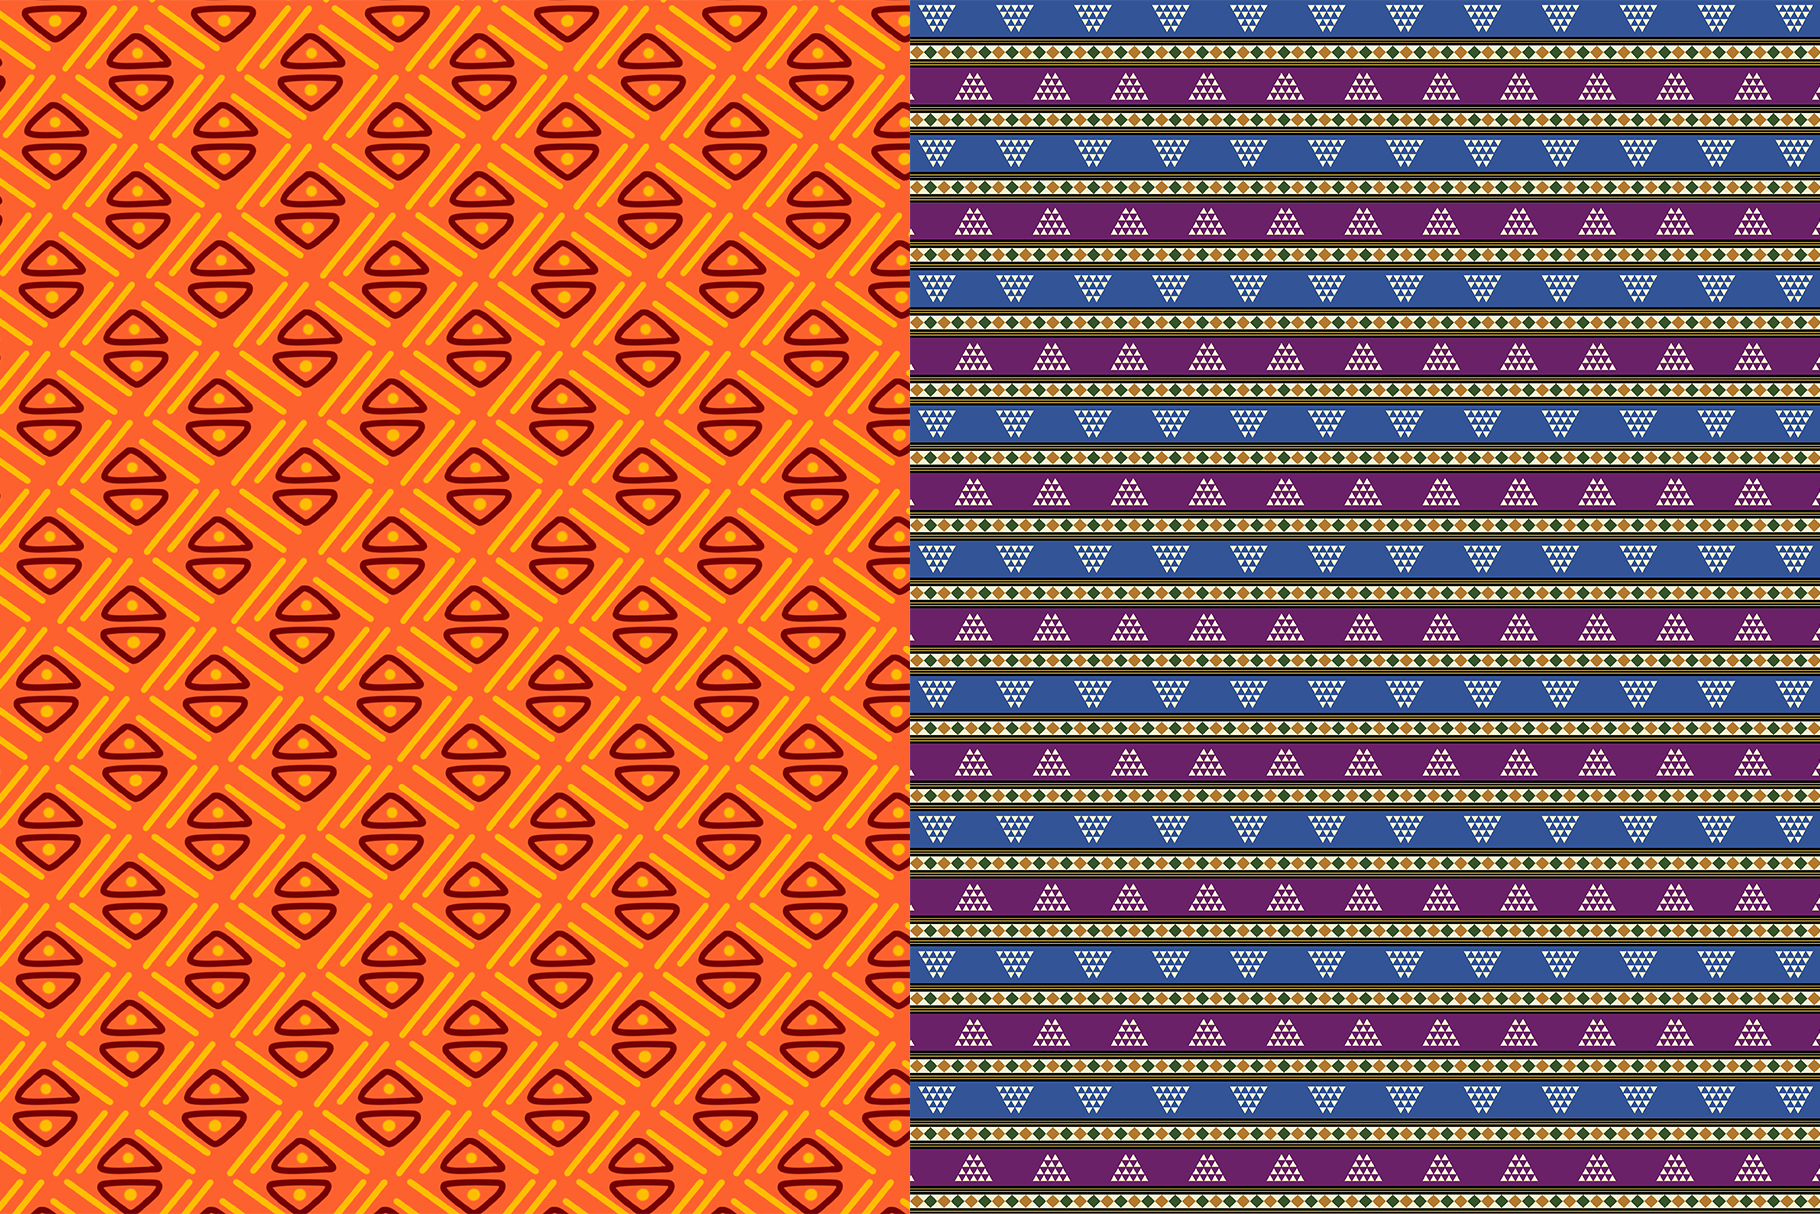 10 African Ethnic Patterns example image 7